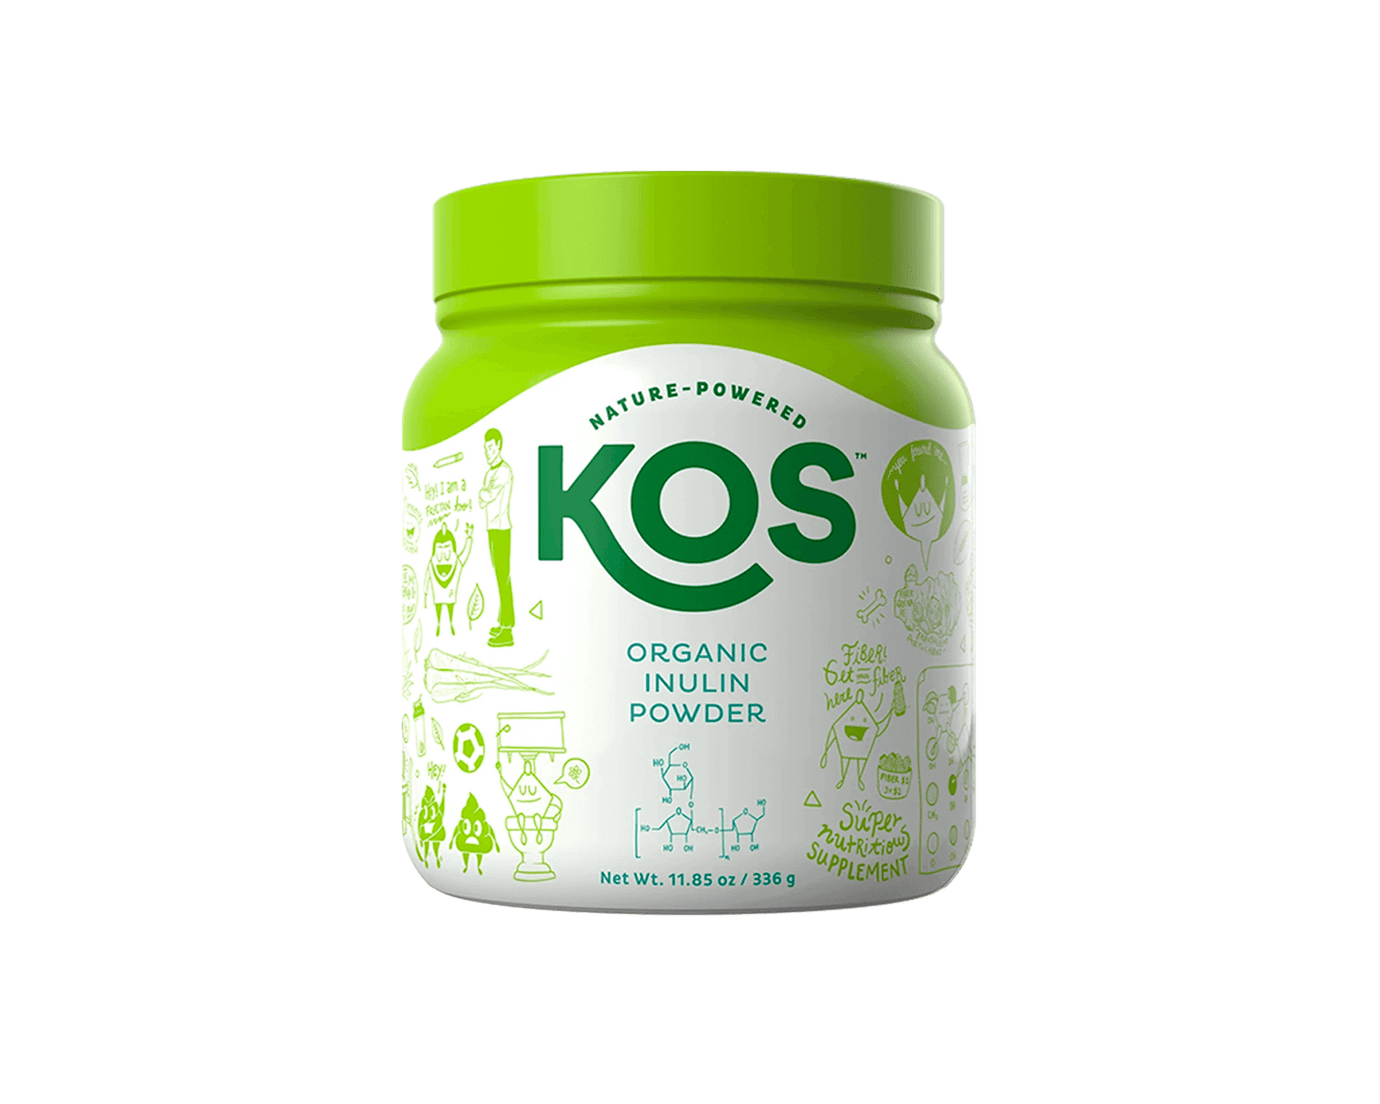 KOS Organic Inulin Powder